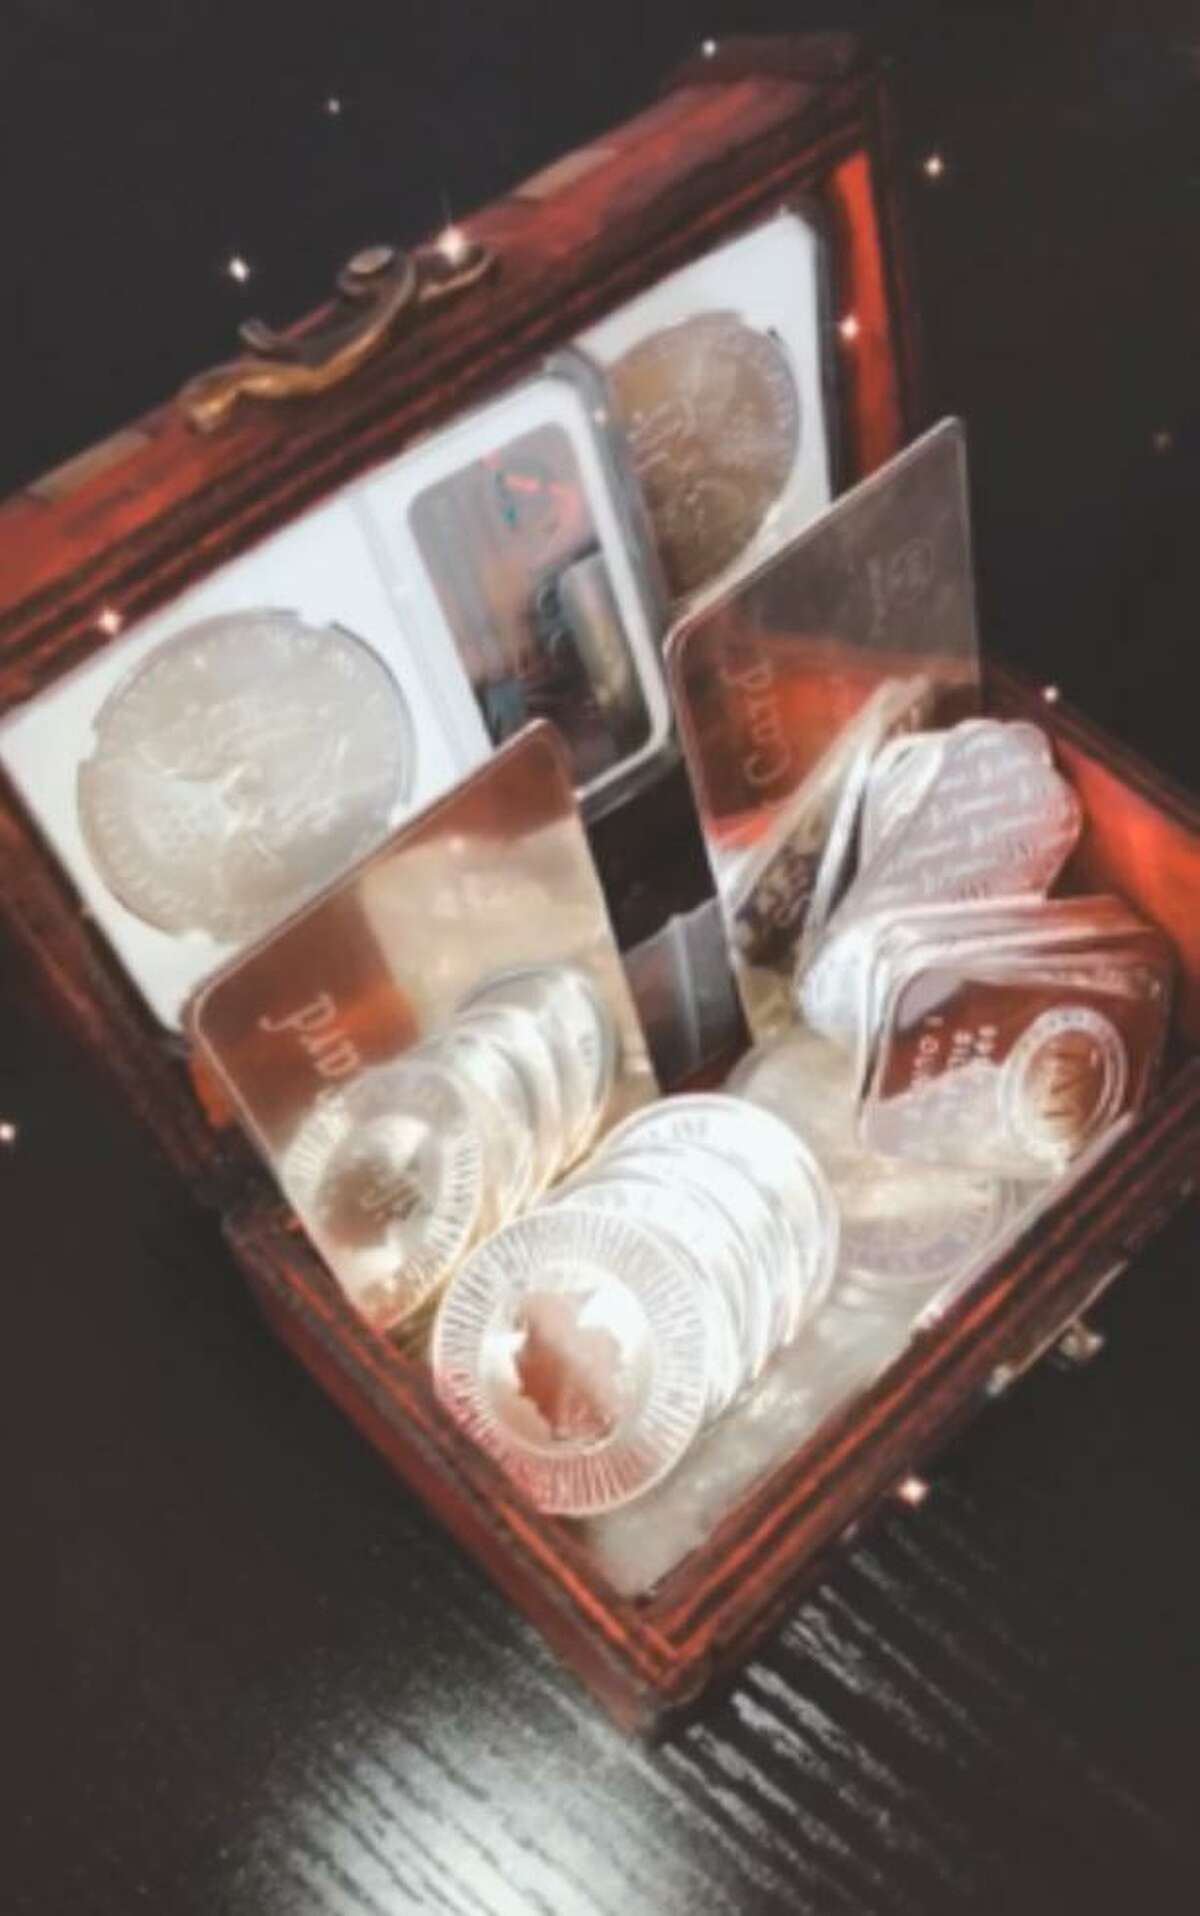 Shown is the treasure worth at least $600 which contains over 19 ounces of silver and 40 Sacagawea coins.